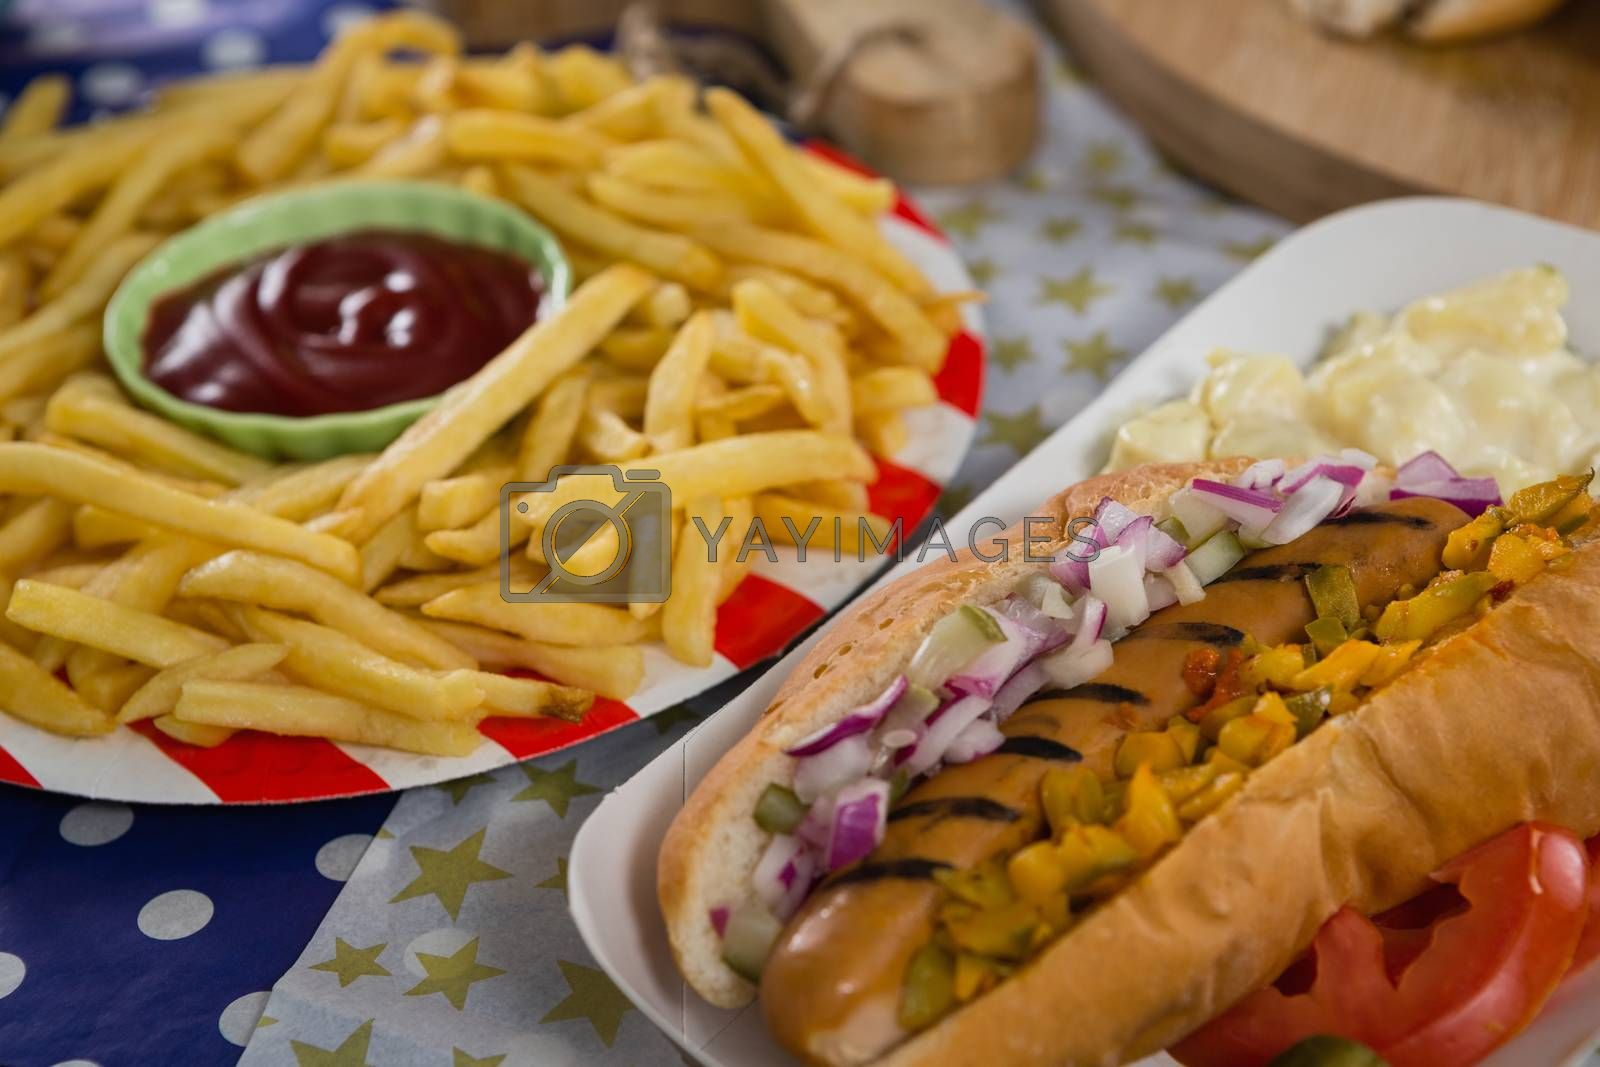 Close-up of hot dog and french fries on wooden table with 4th july theme